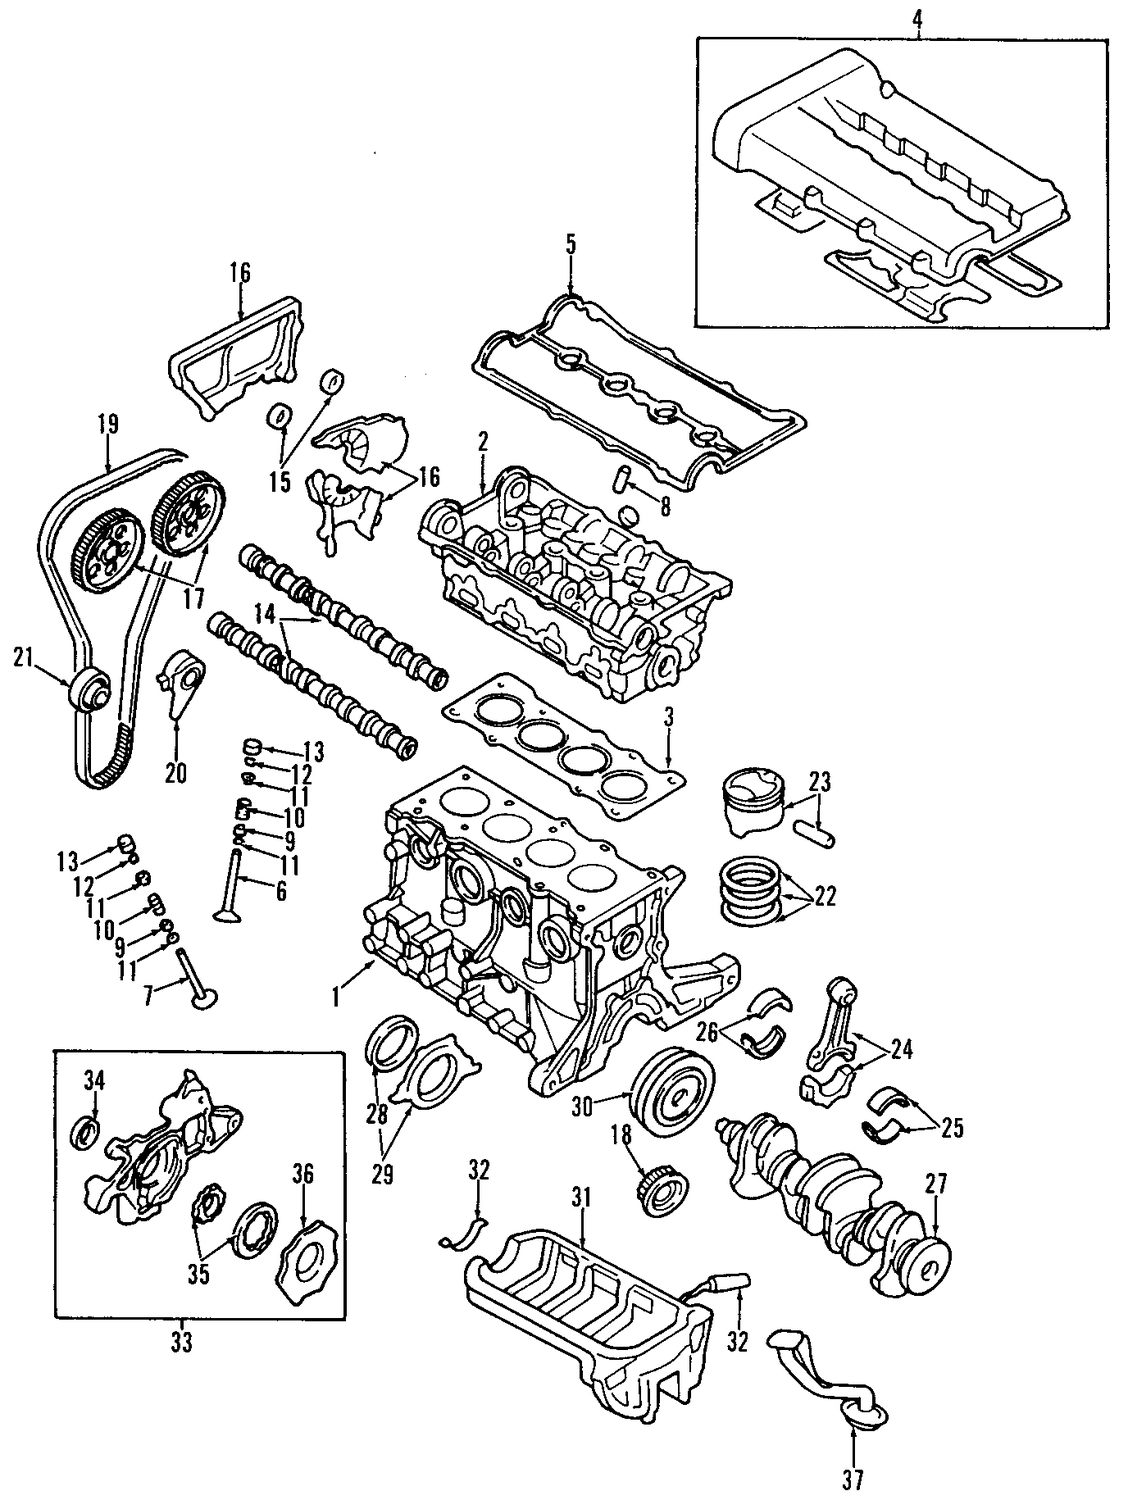 Sail Boat Engine Wiring Harness Auto Electrical Diagram Yanmar L100 26 Images